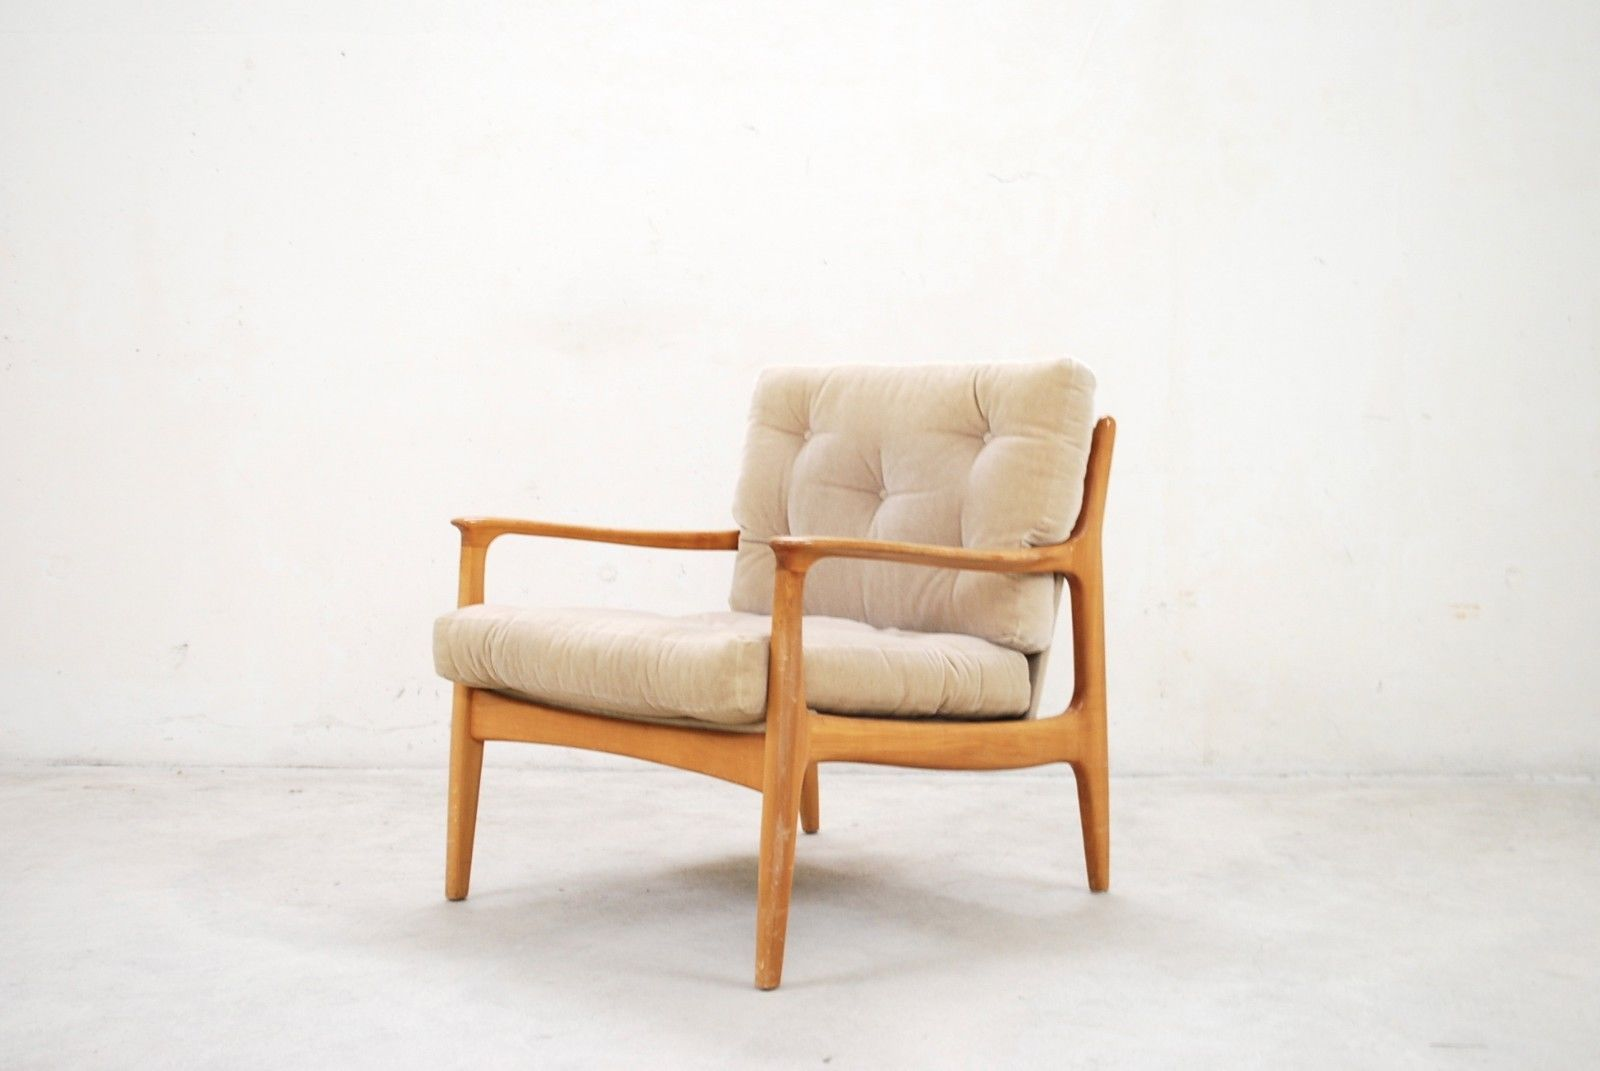 Wk Sessel Wk Wohnen Wk 686 Mid Century 60er Danish Modern Easy Chair Sessel